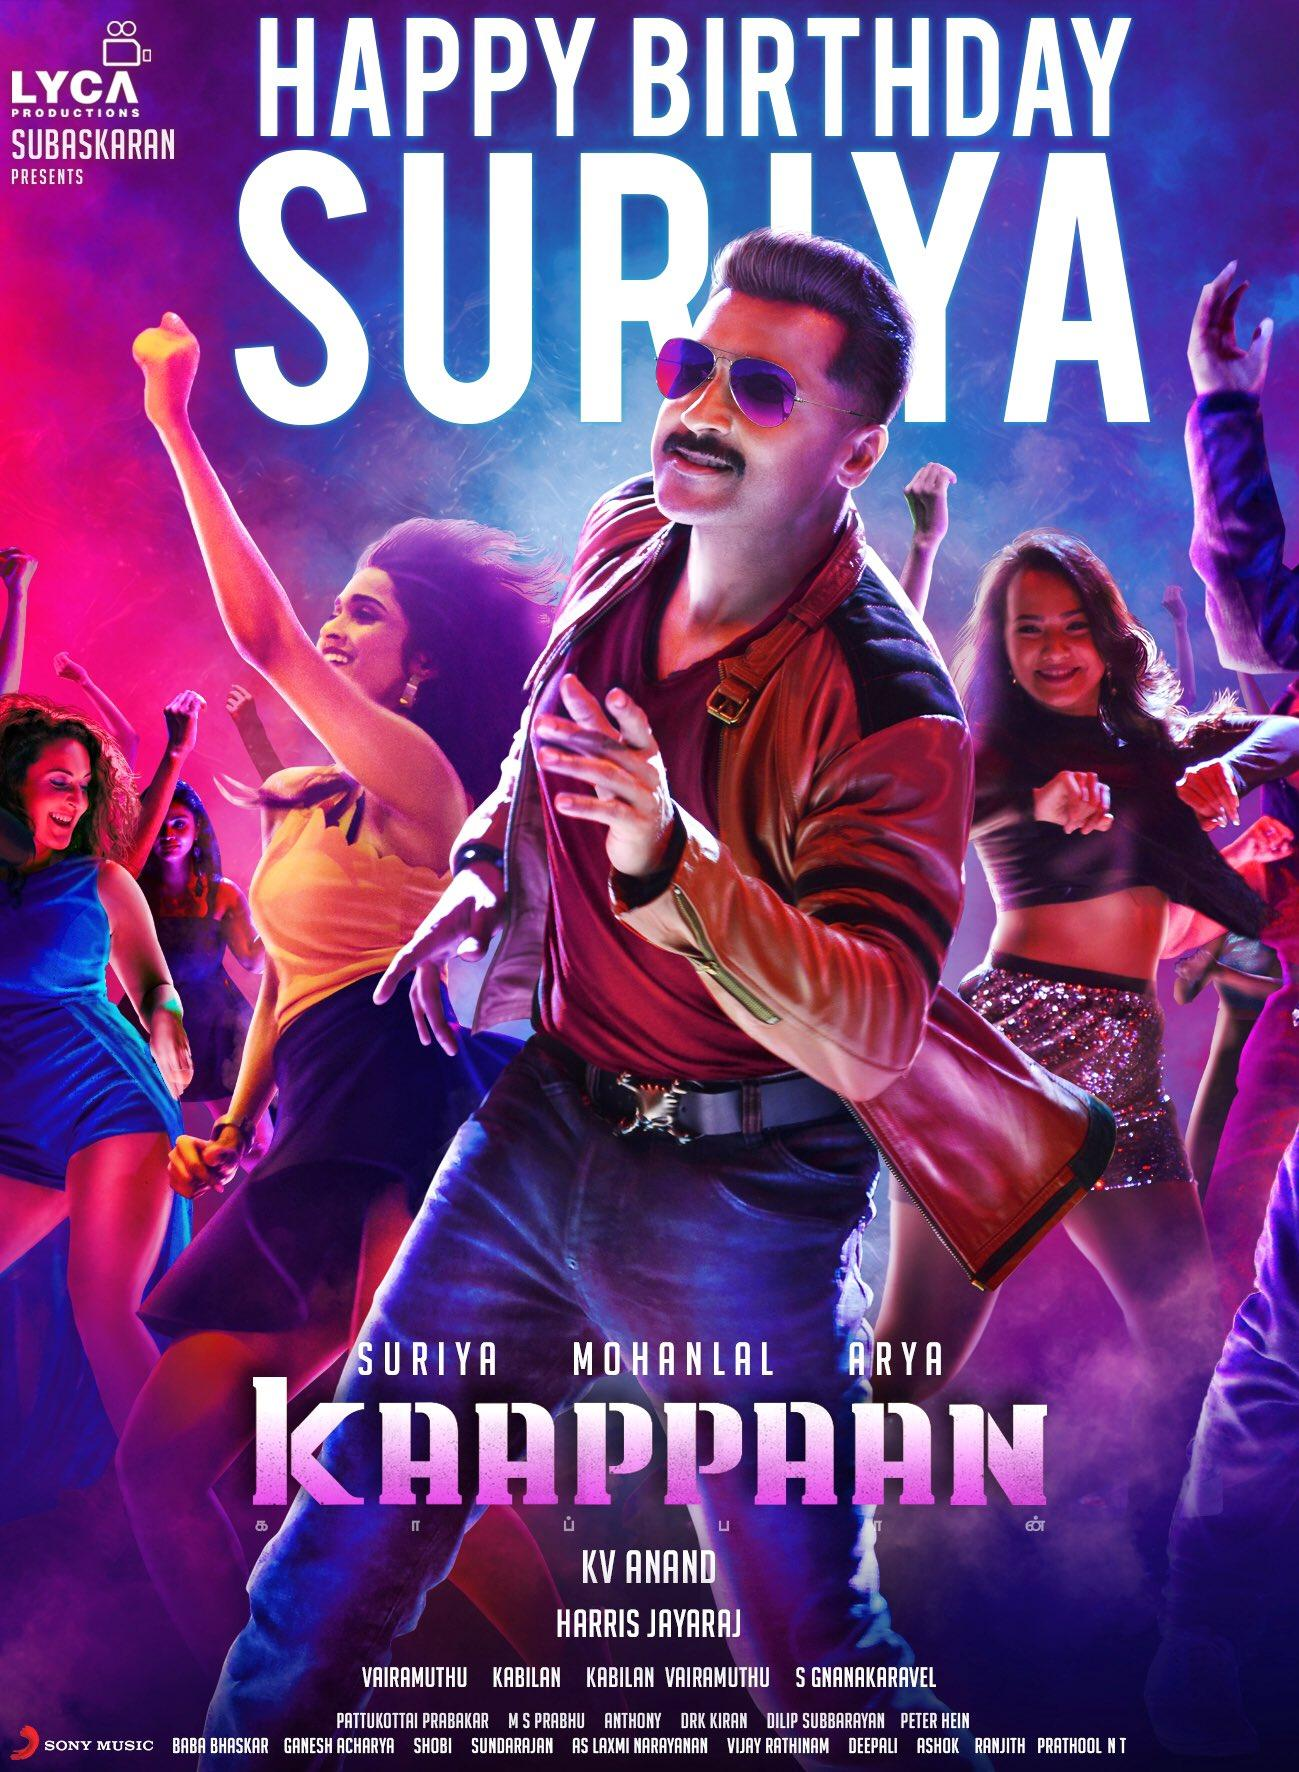 Kaappaan Picture Gallery